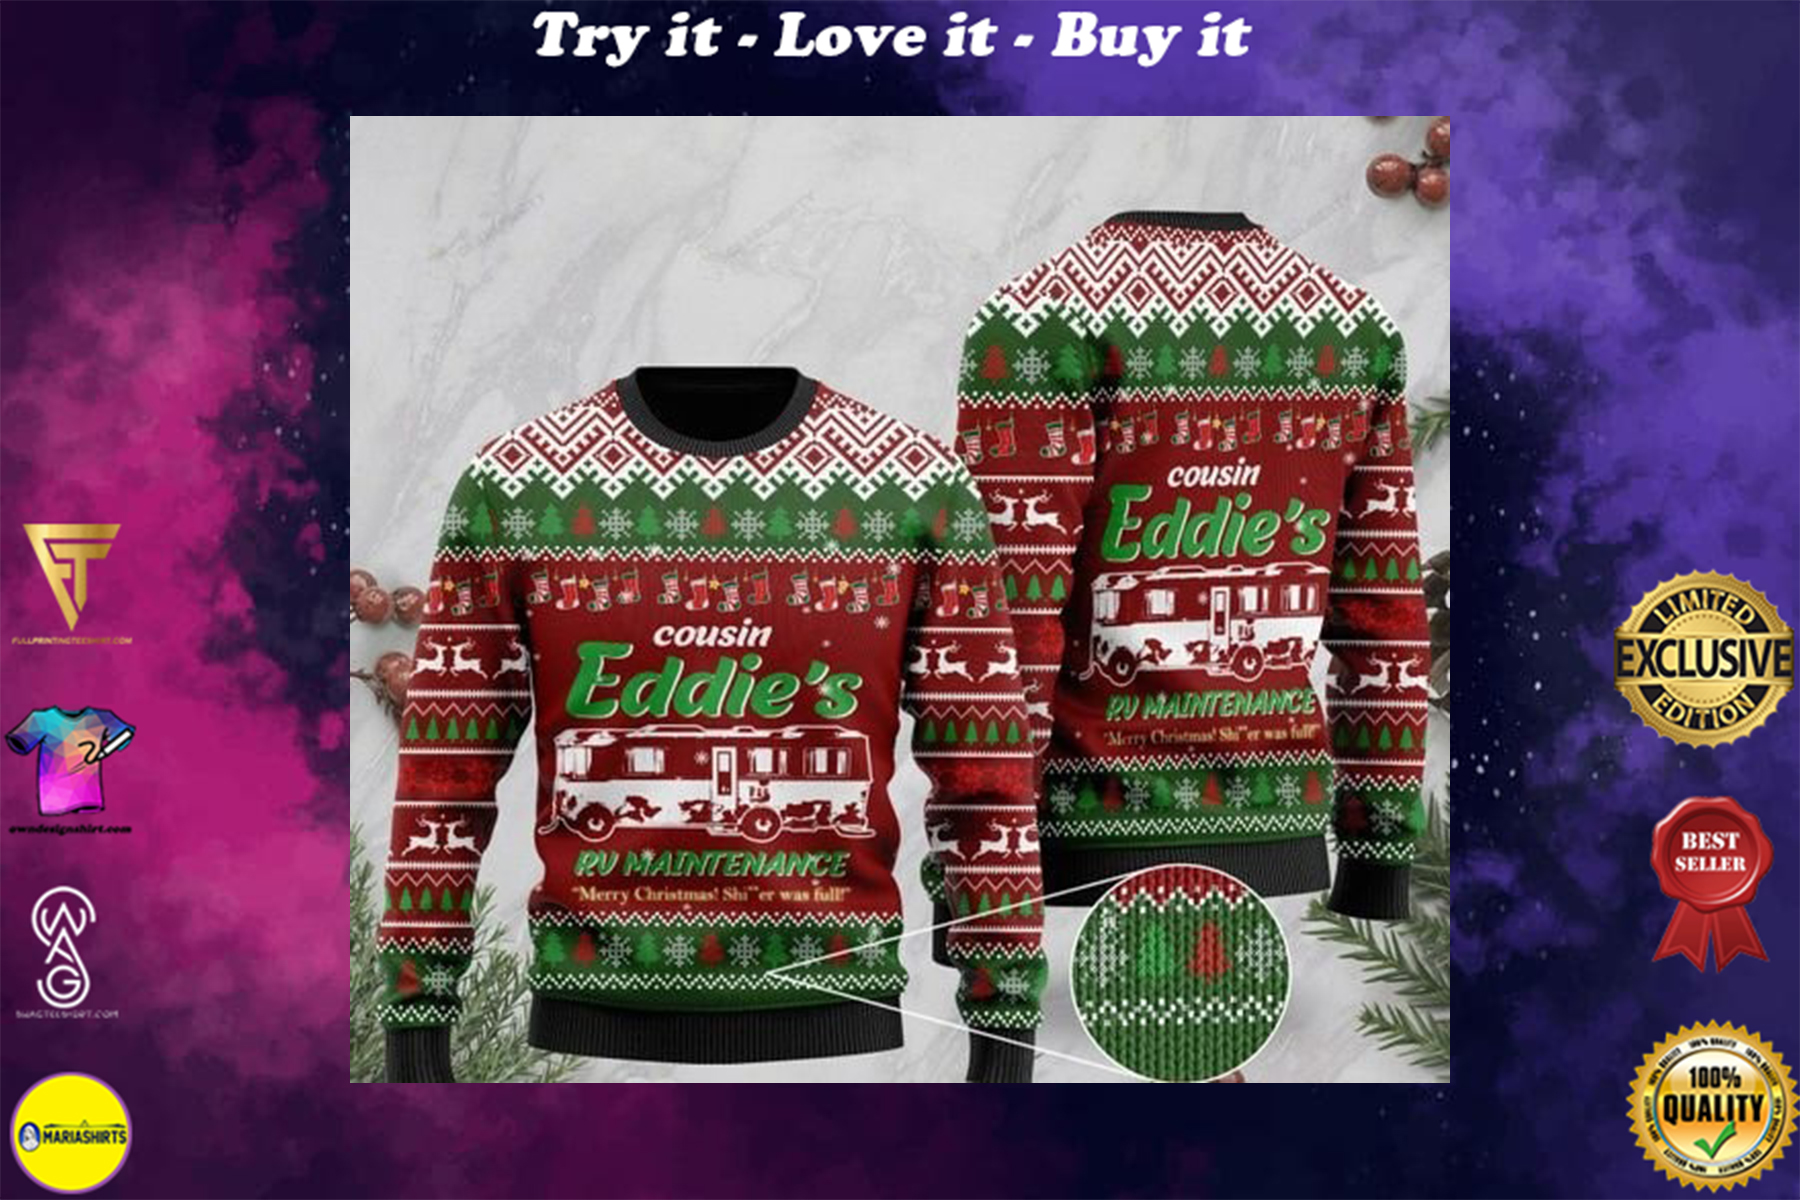 christmas vacation cousin eddies rv maintenance merry christmas ugly sweater